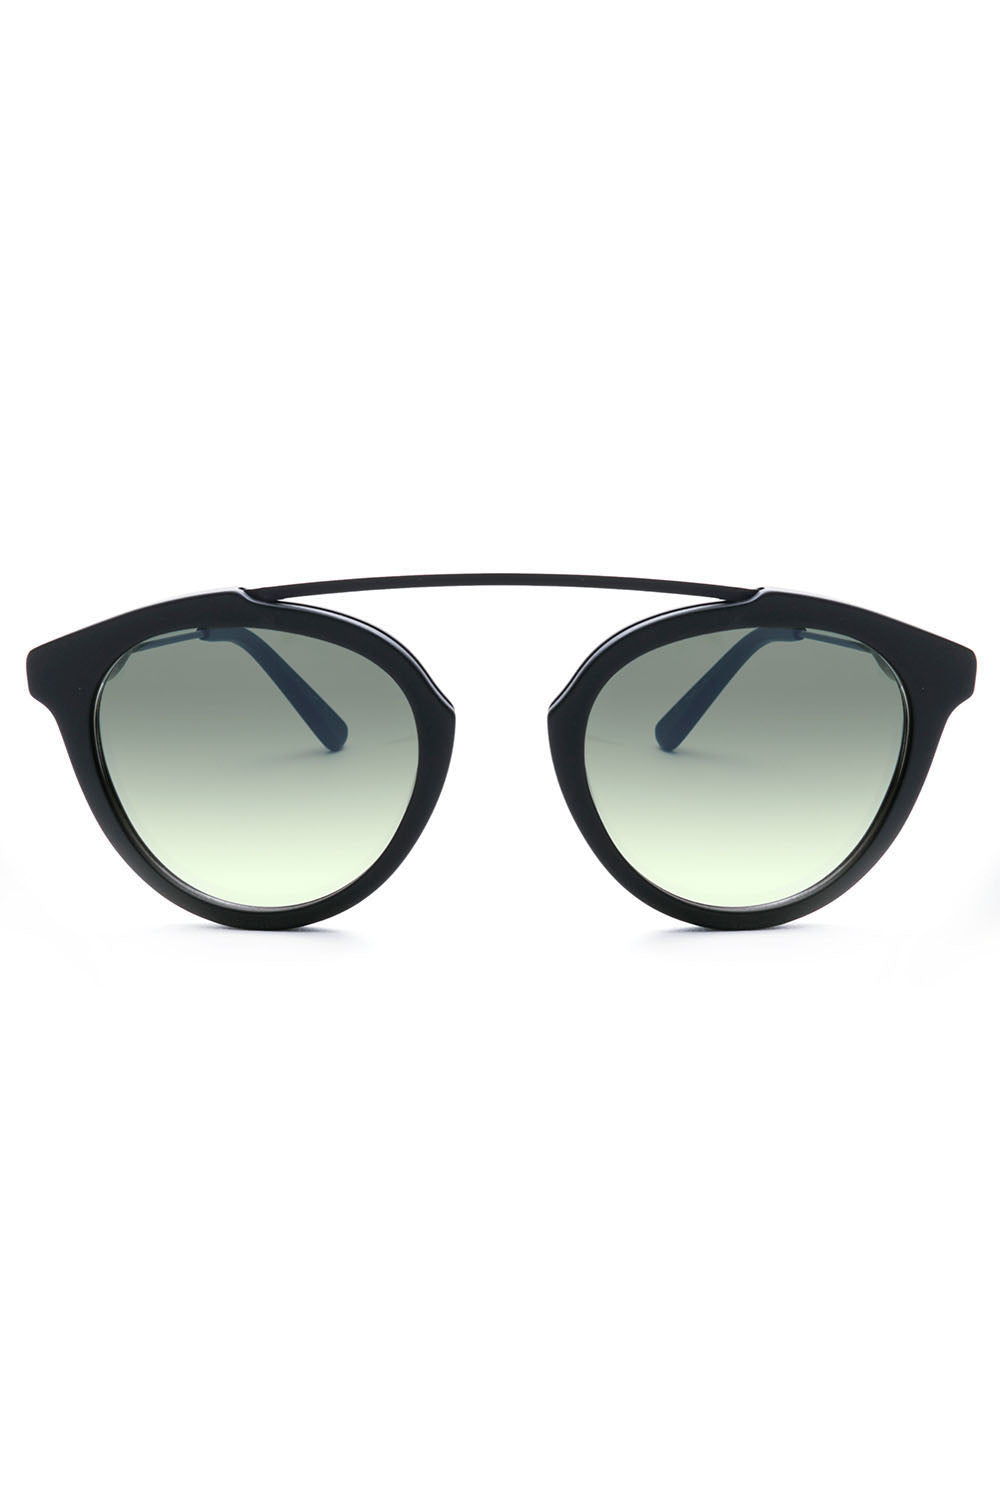 Flower 28 Matte Black Acetate